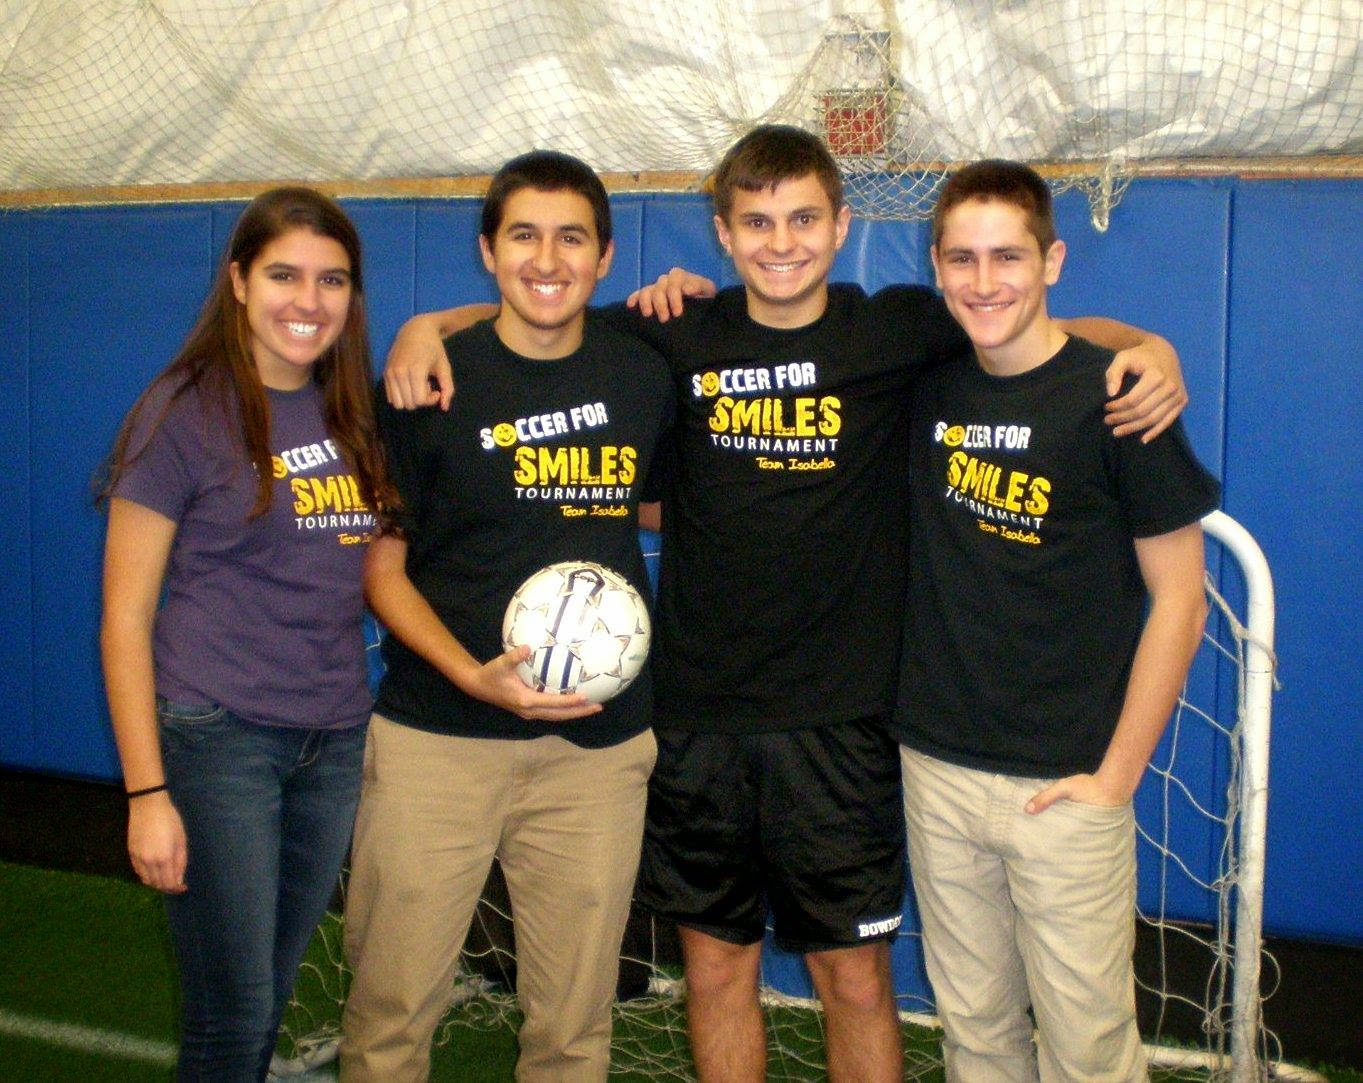 Soccer for Smiles crew